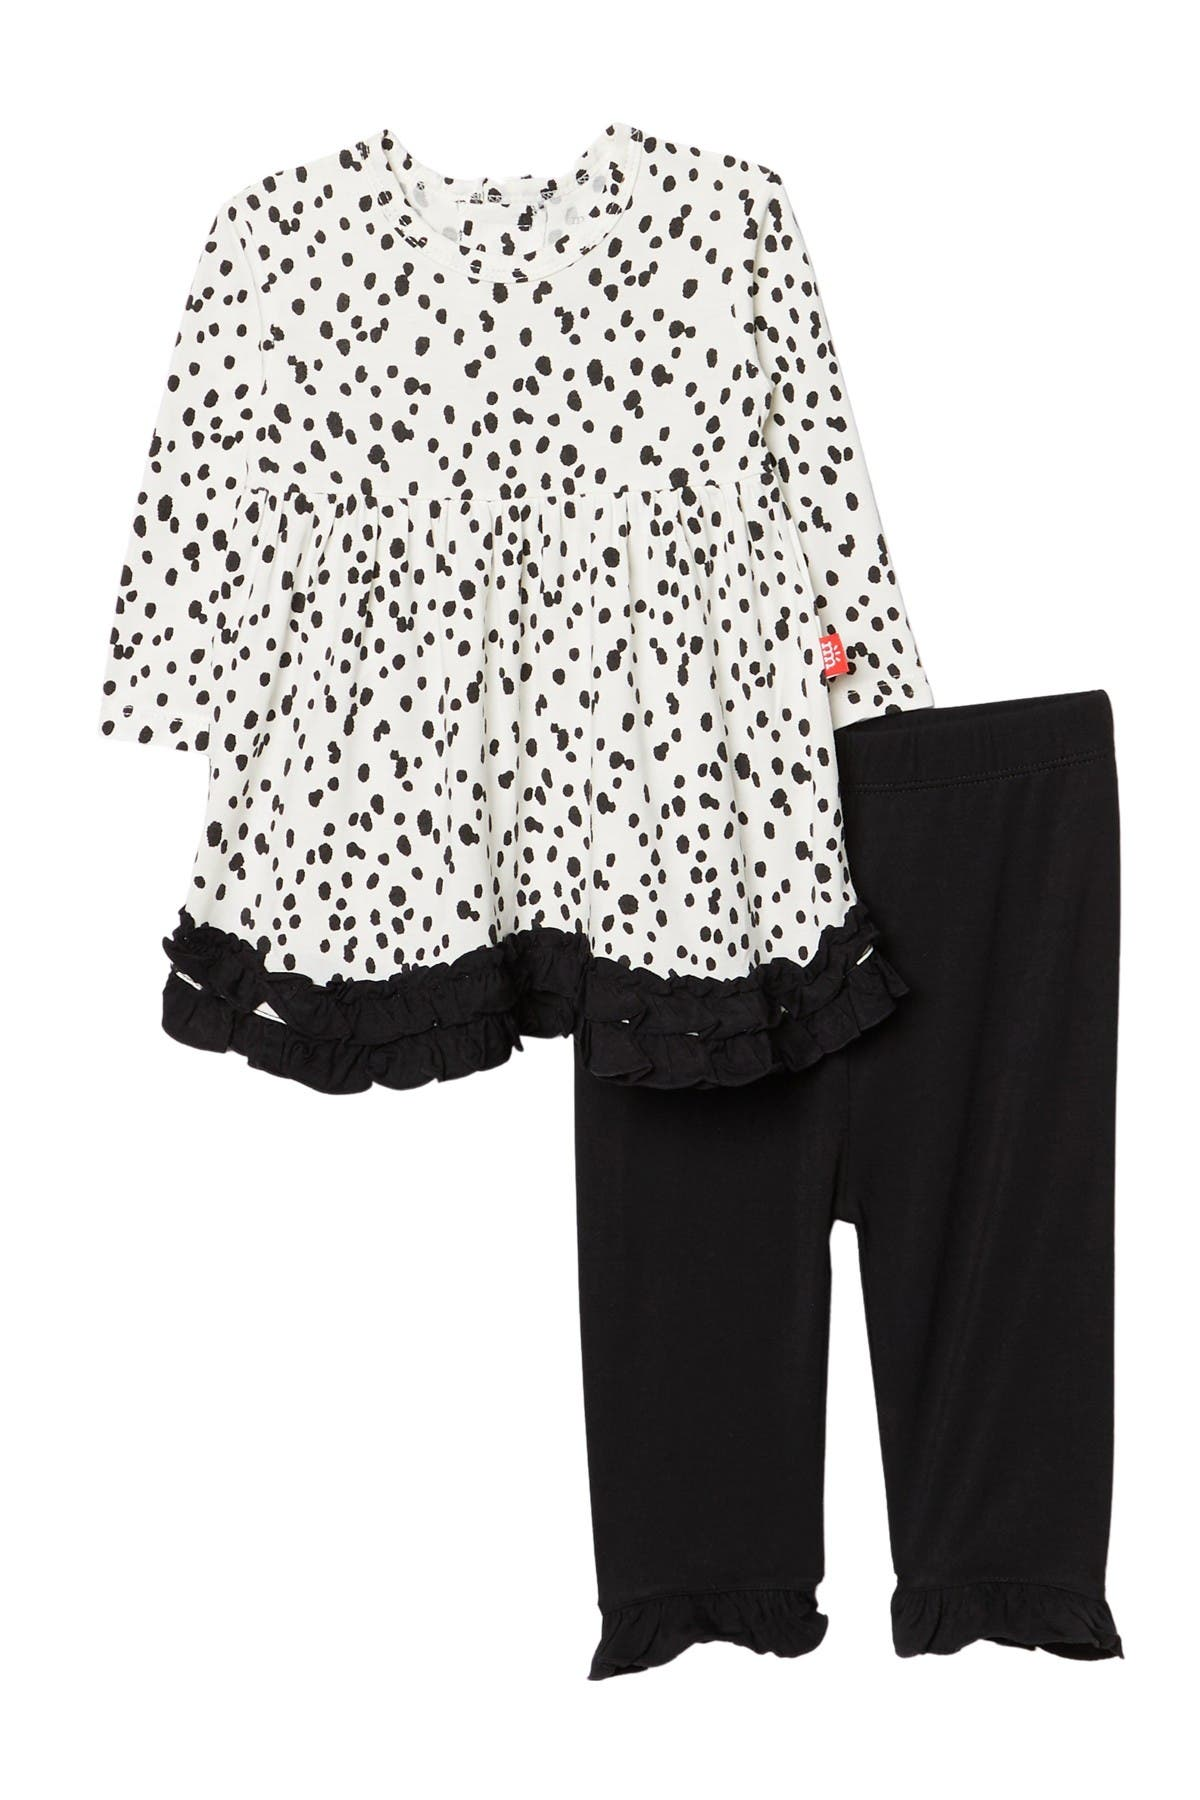 Image of MAGNETIC ME Seeing Spots Magnetic Closure Dress & Pants 2-Piece Set